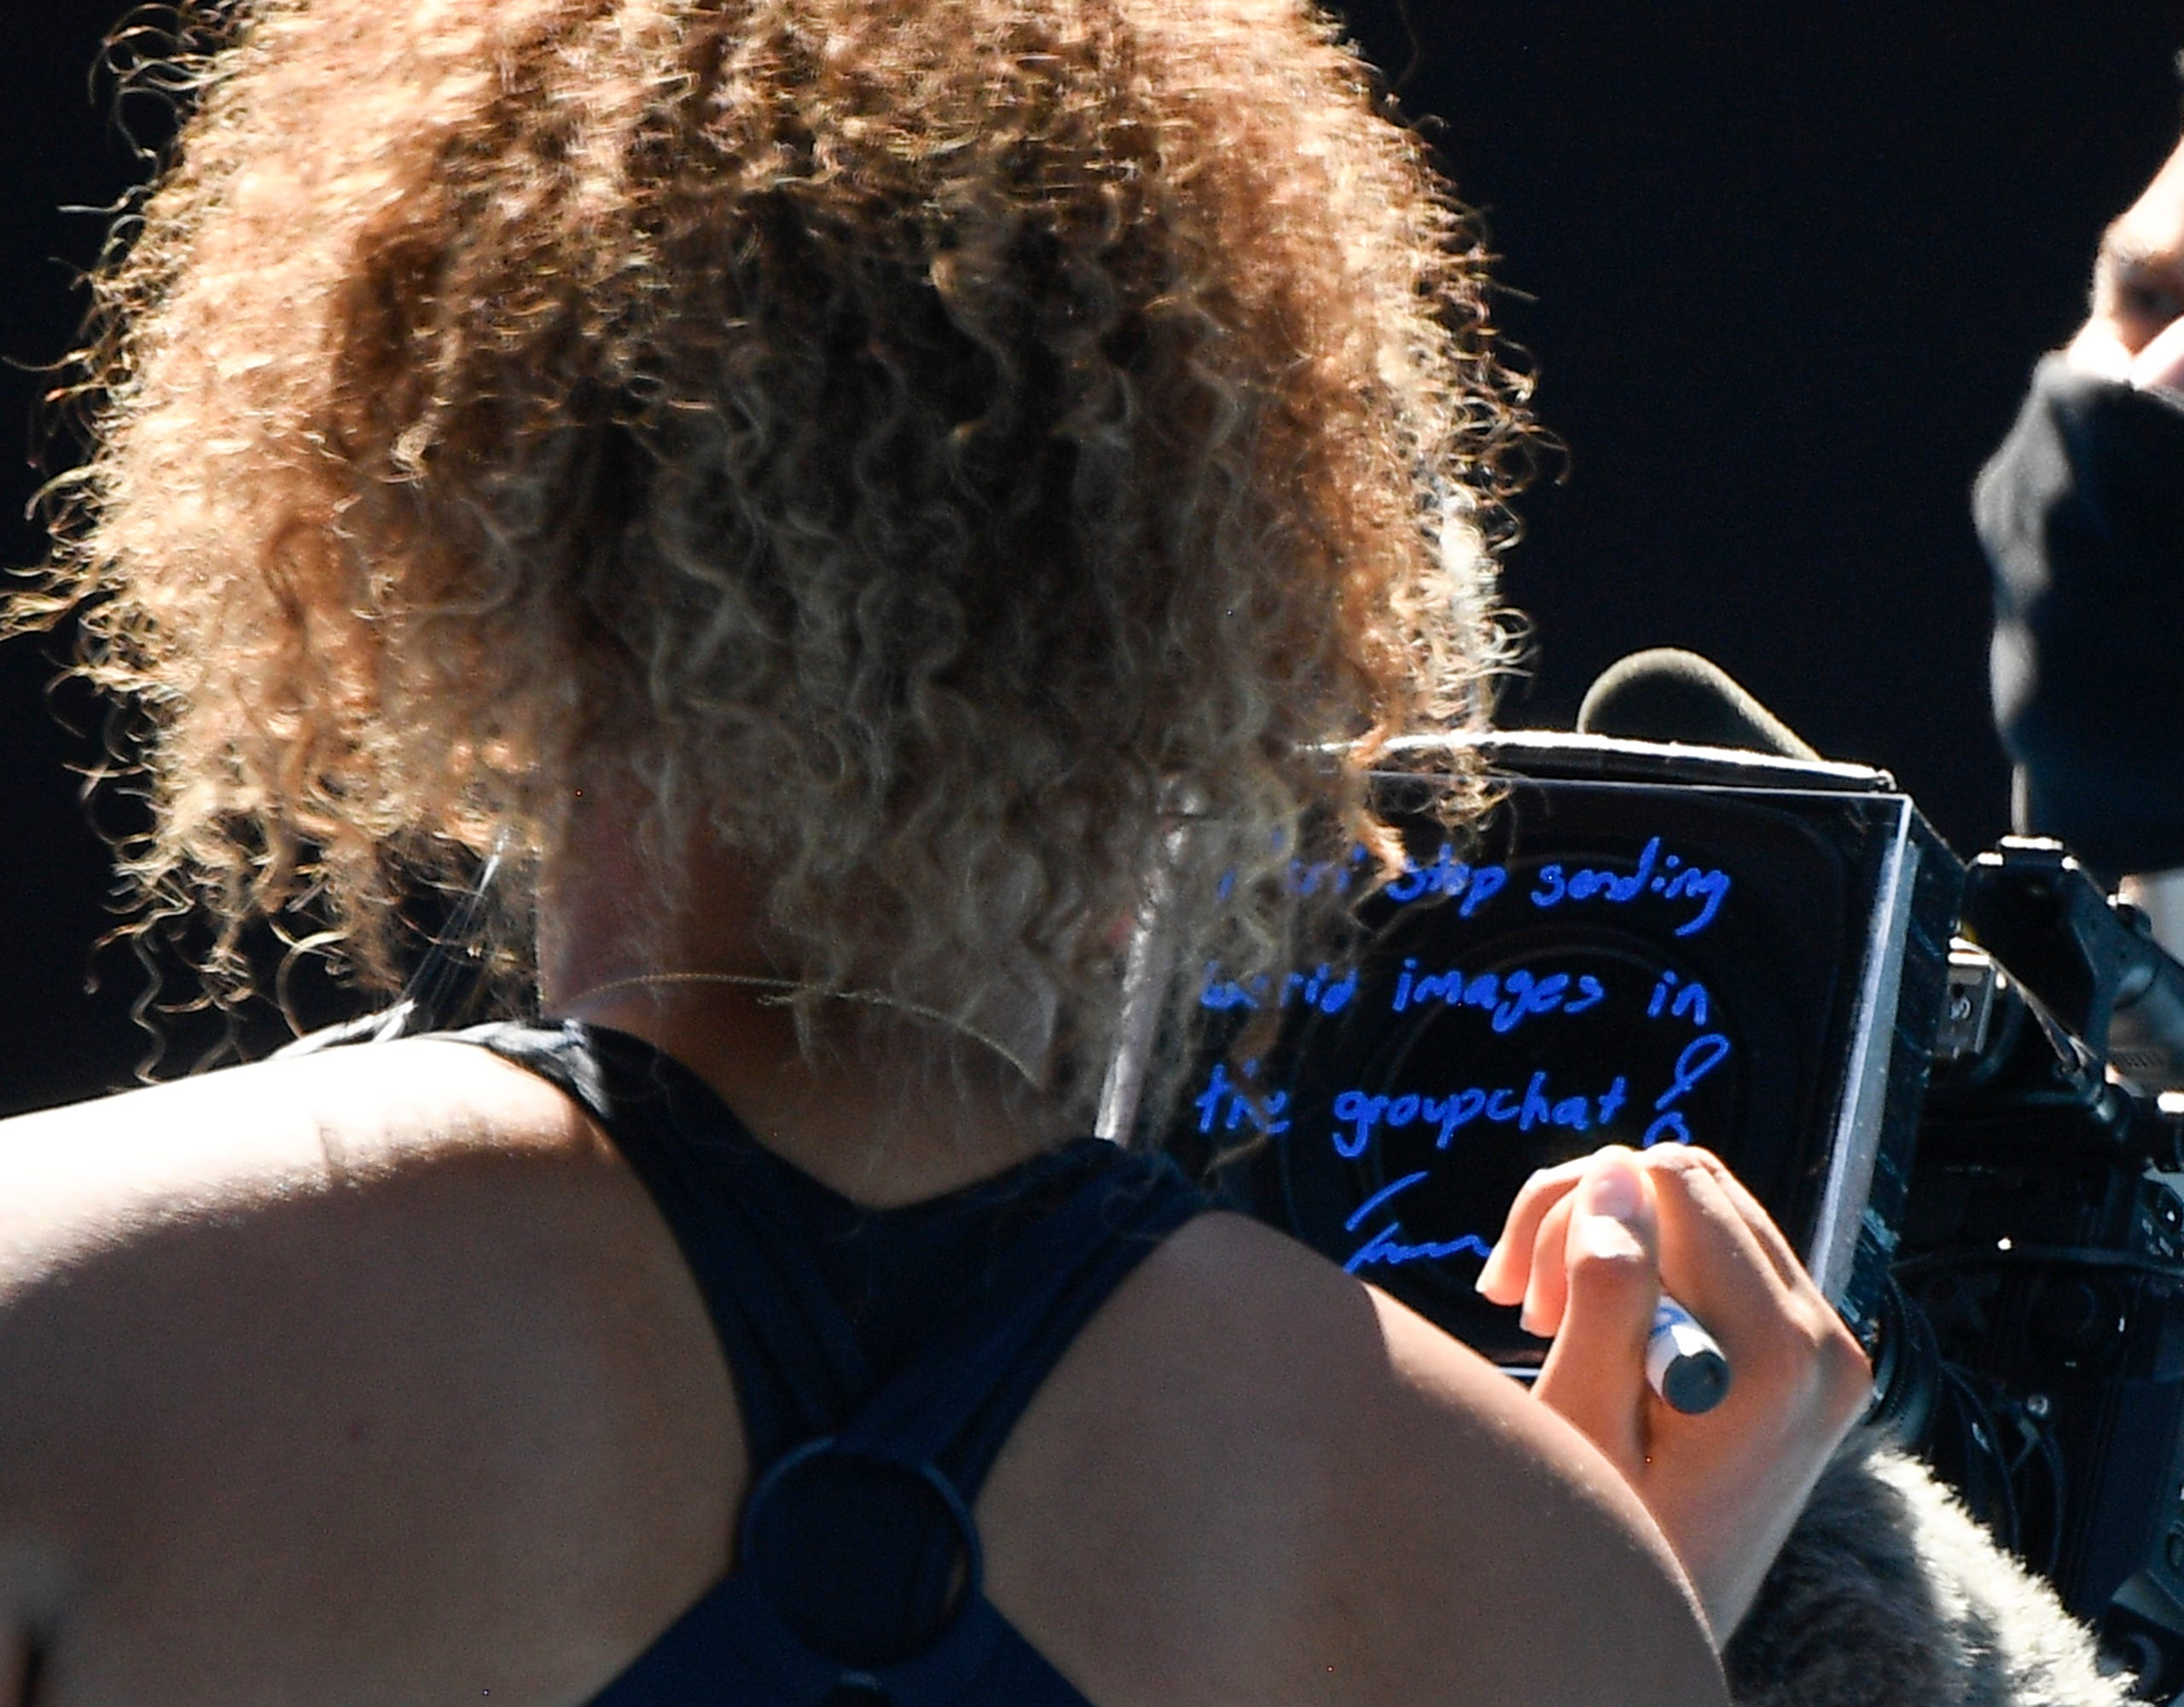 Japan's Naomi Osaka writes a massage on a TV screen as she leaves Rod Laver Arena after defeating United States' Serena Williams in their semifinal match at the Australian Open tennis championship in Melbourne, Australia, Thursday, Feb. 18, 2021.